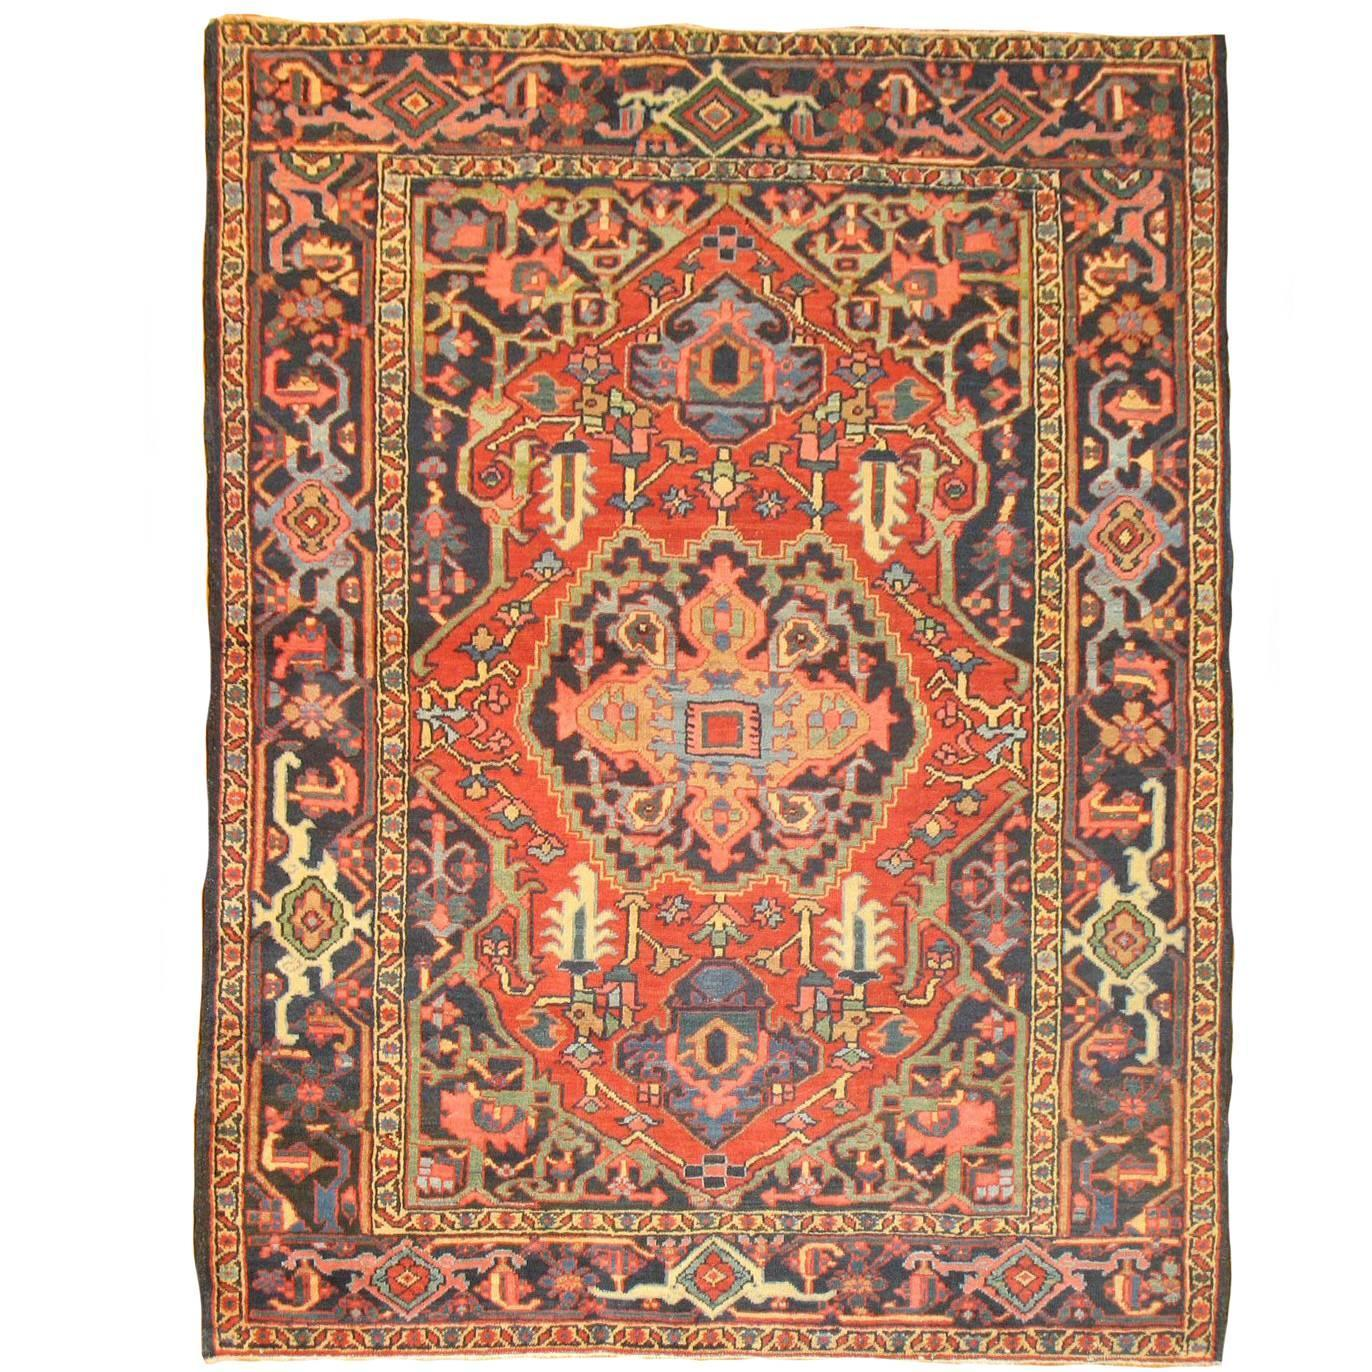 Used large area rugs for sale extra large area rugs for for Home decorators rugs sale